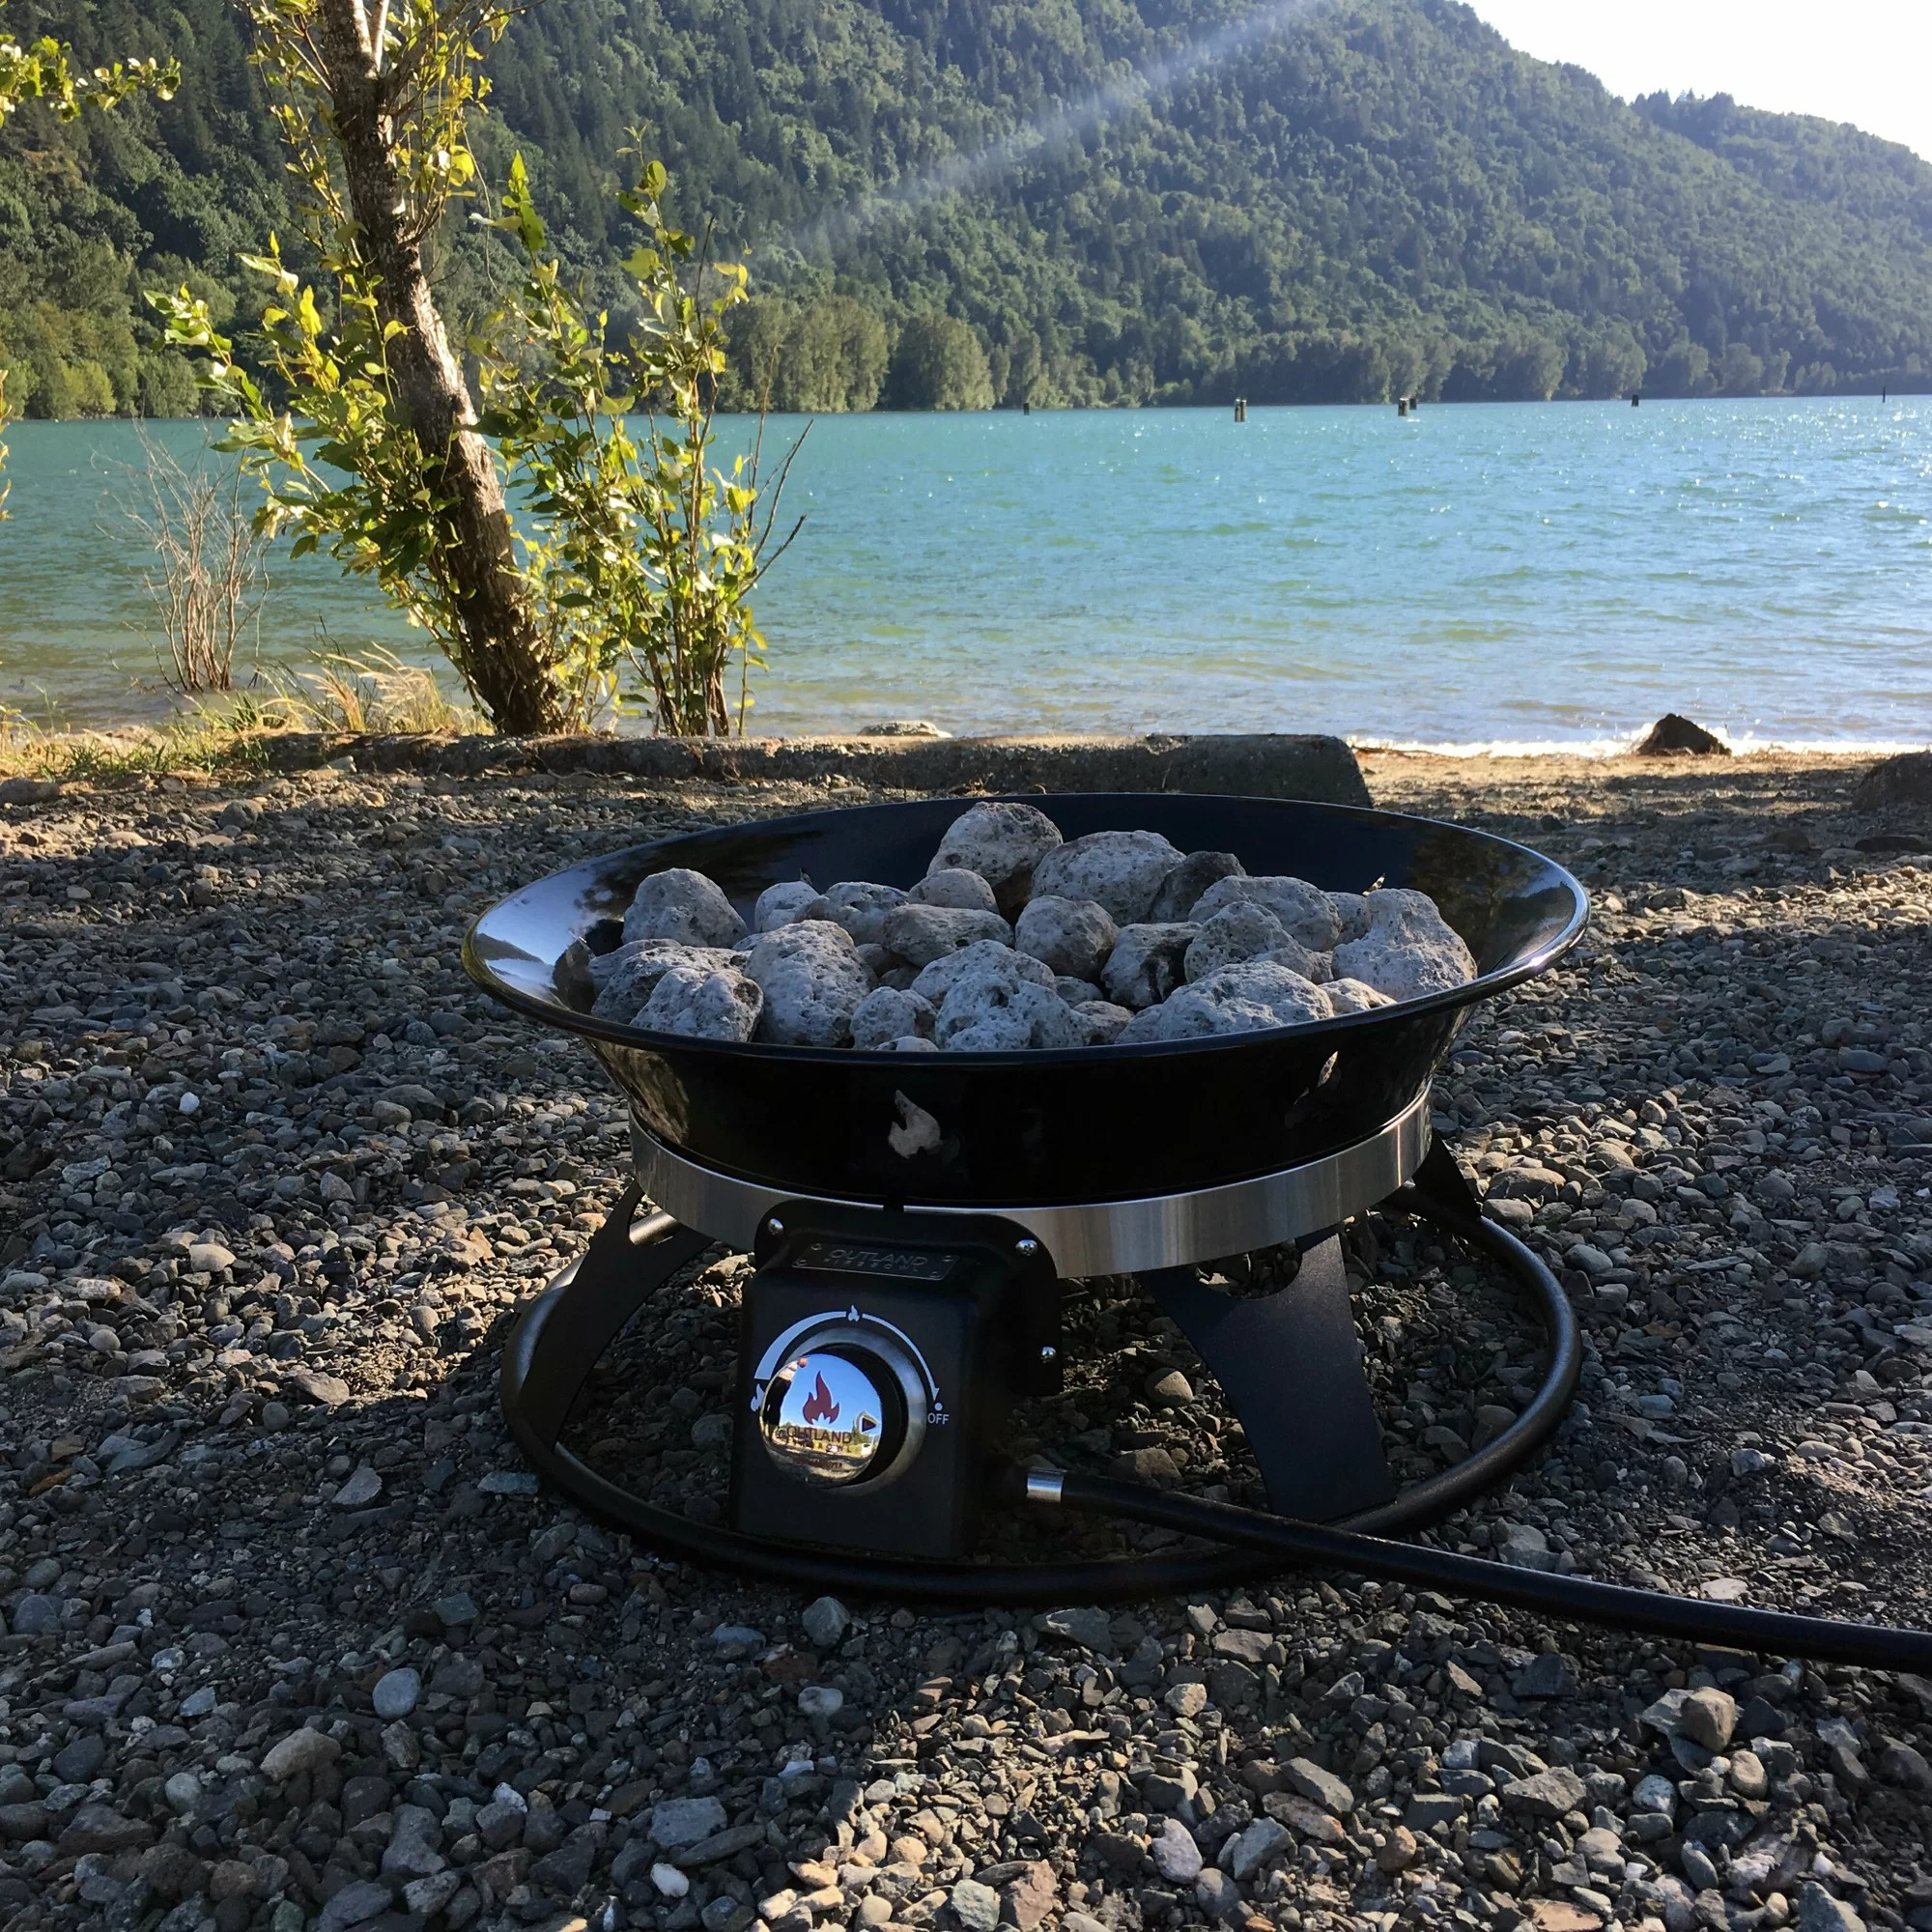 Outland Living Cypress Steel Propane Fire Pit 873975008636 ... on Outland Living Cypress Fire Pit id=27958